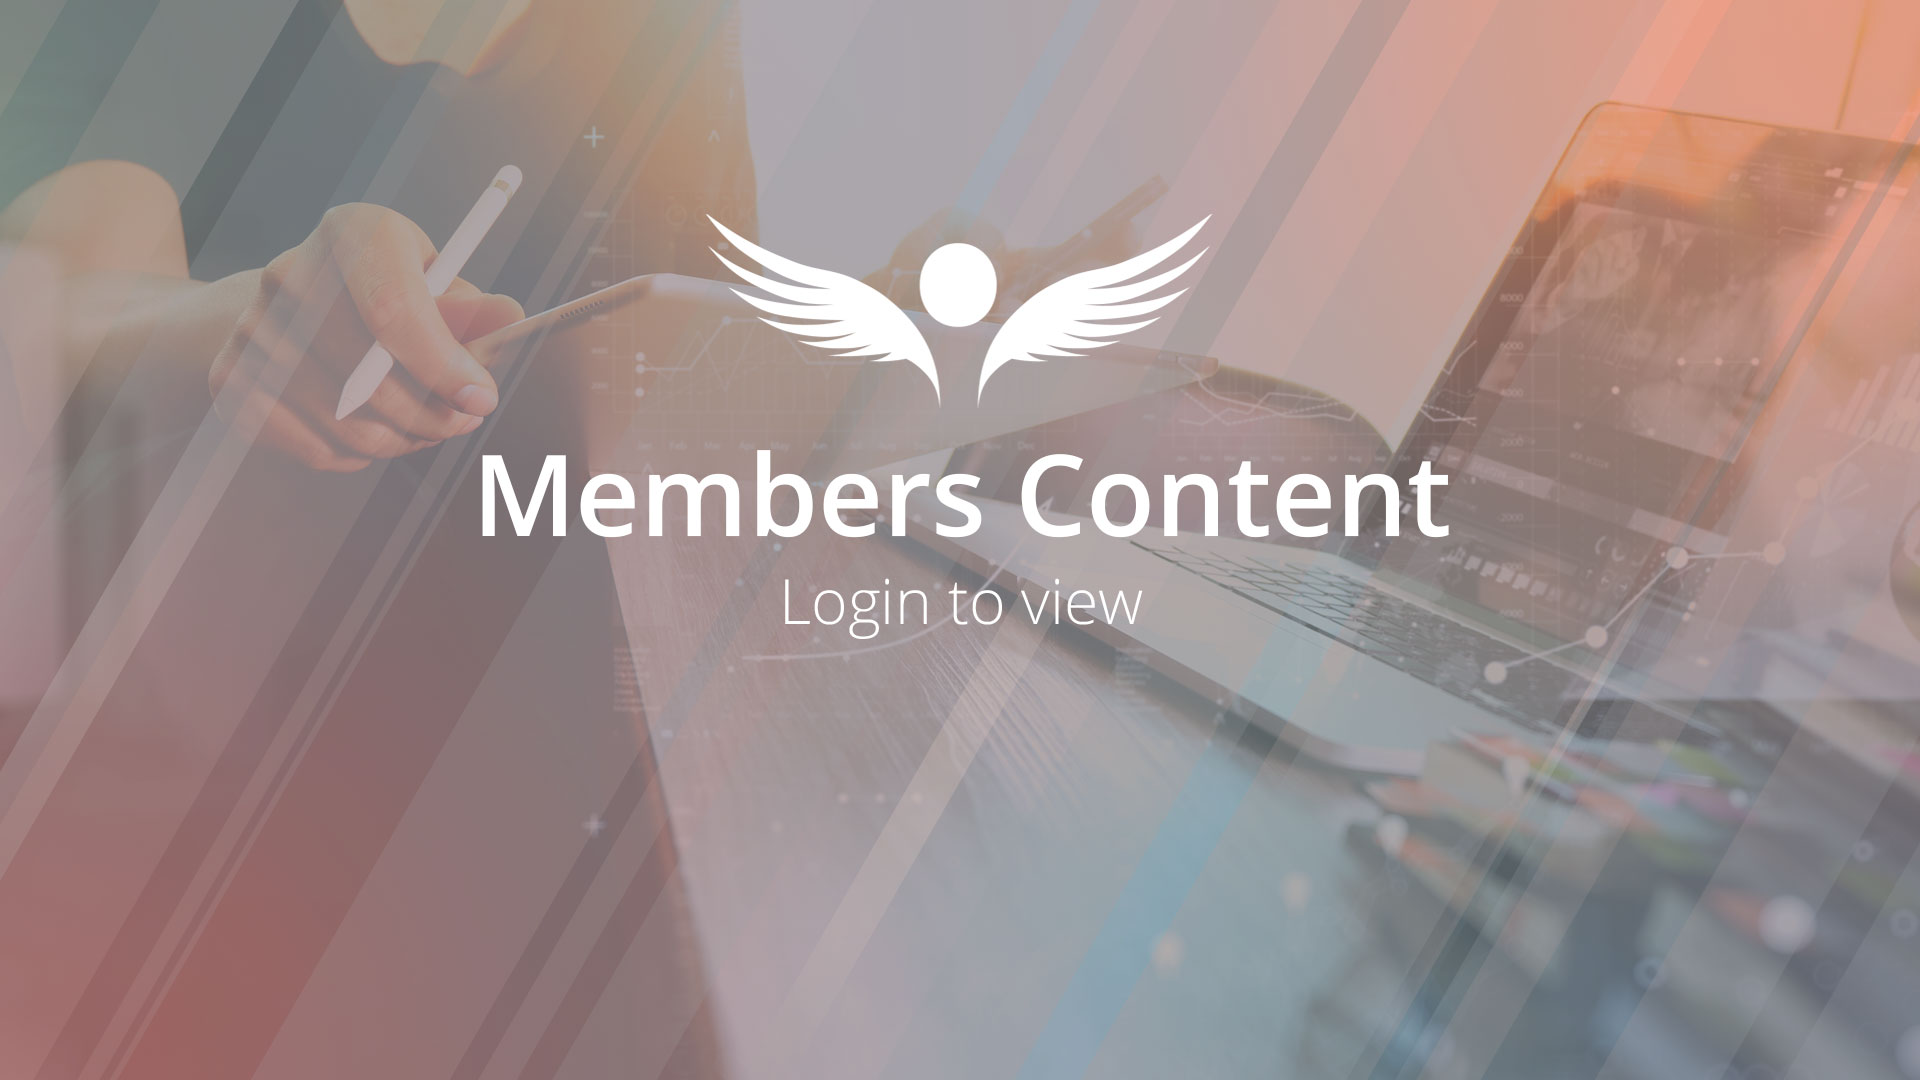 Members-Content-Maximo-Research-Report